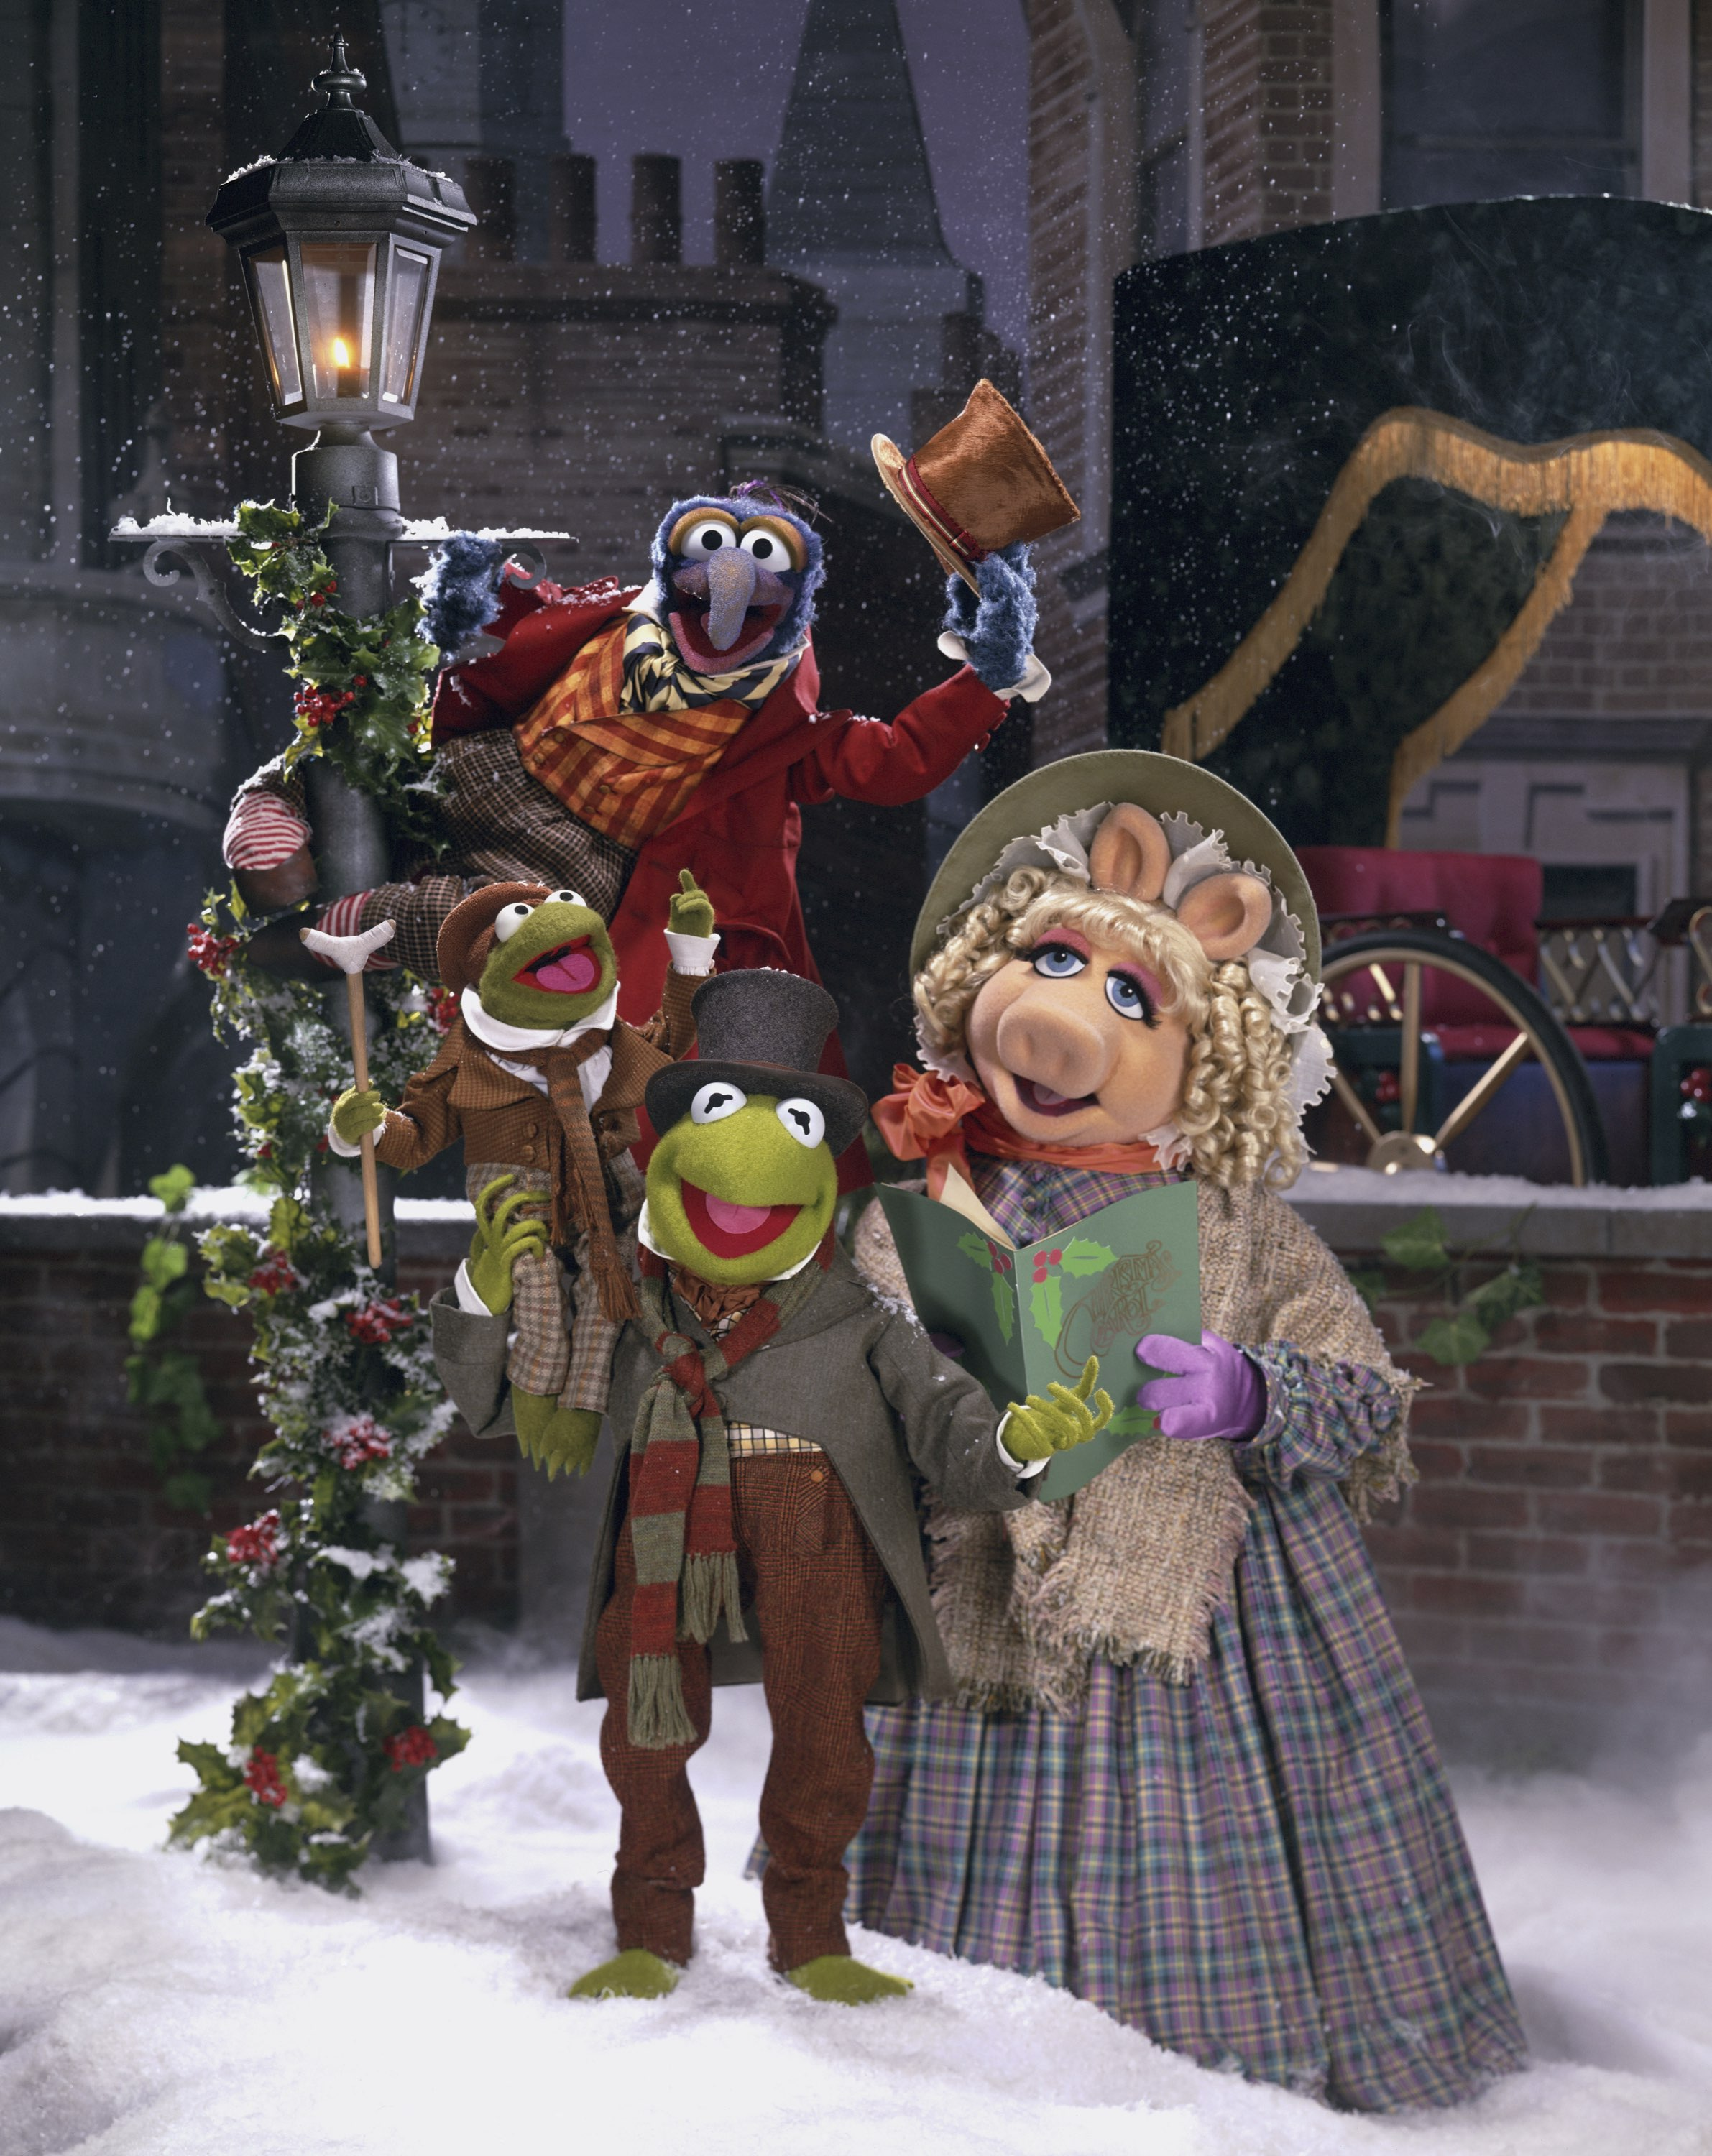 Christmas Carol Characters.The Muppet Christmas Carol Muppet Wiki Fandom Powered By